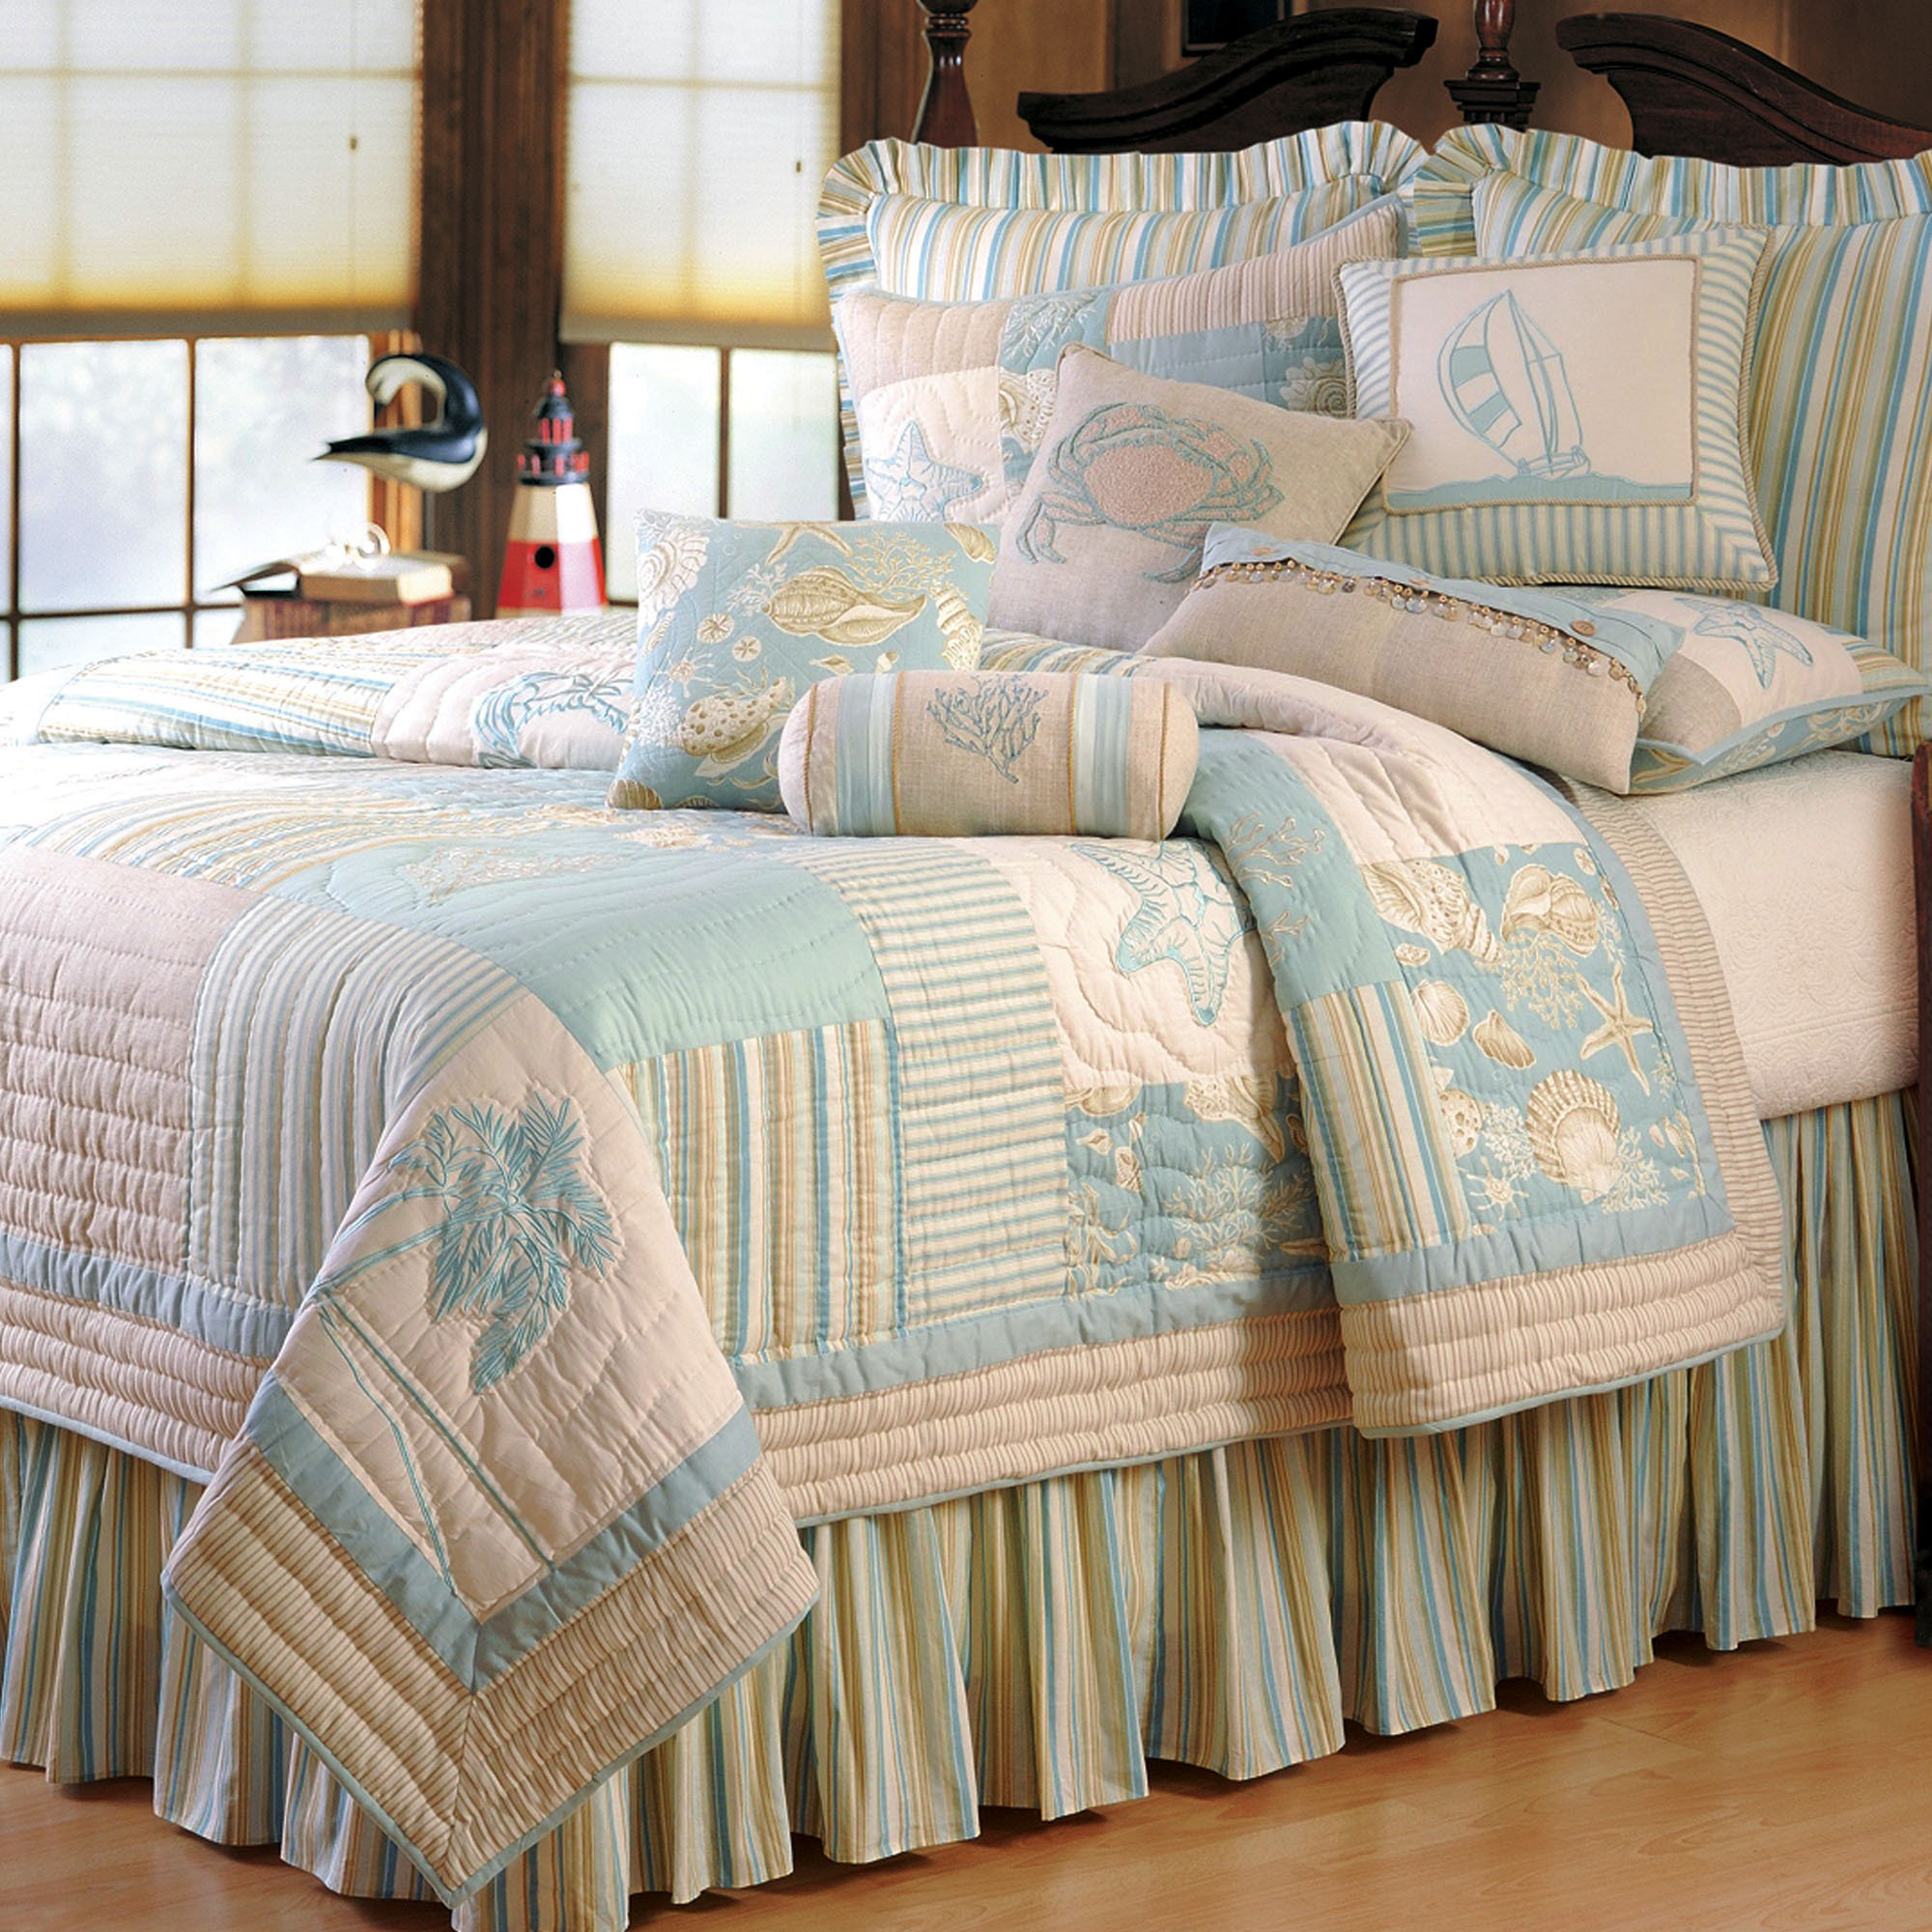 Cute king size quilts for modern bedroom design with king size quilt dimensions